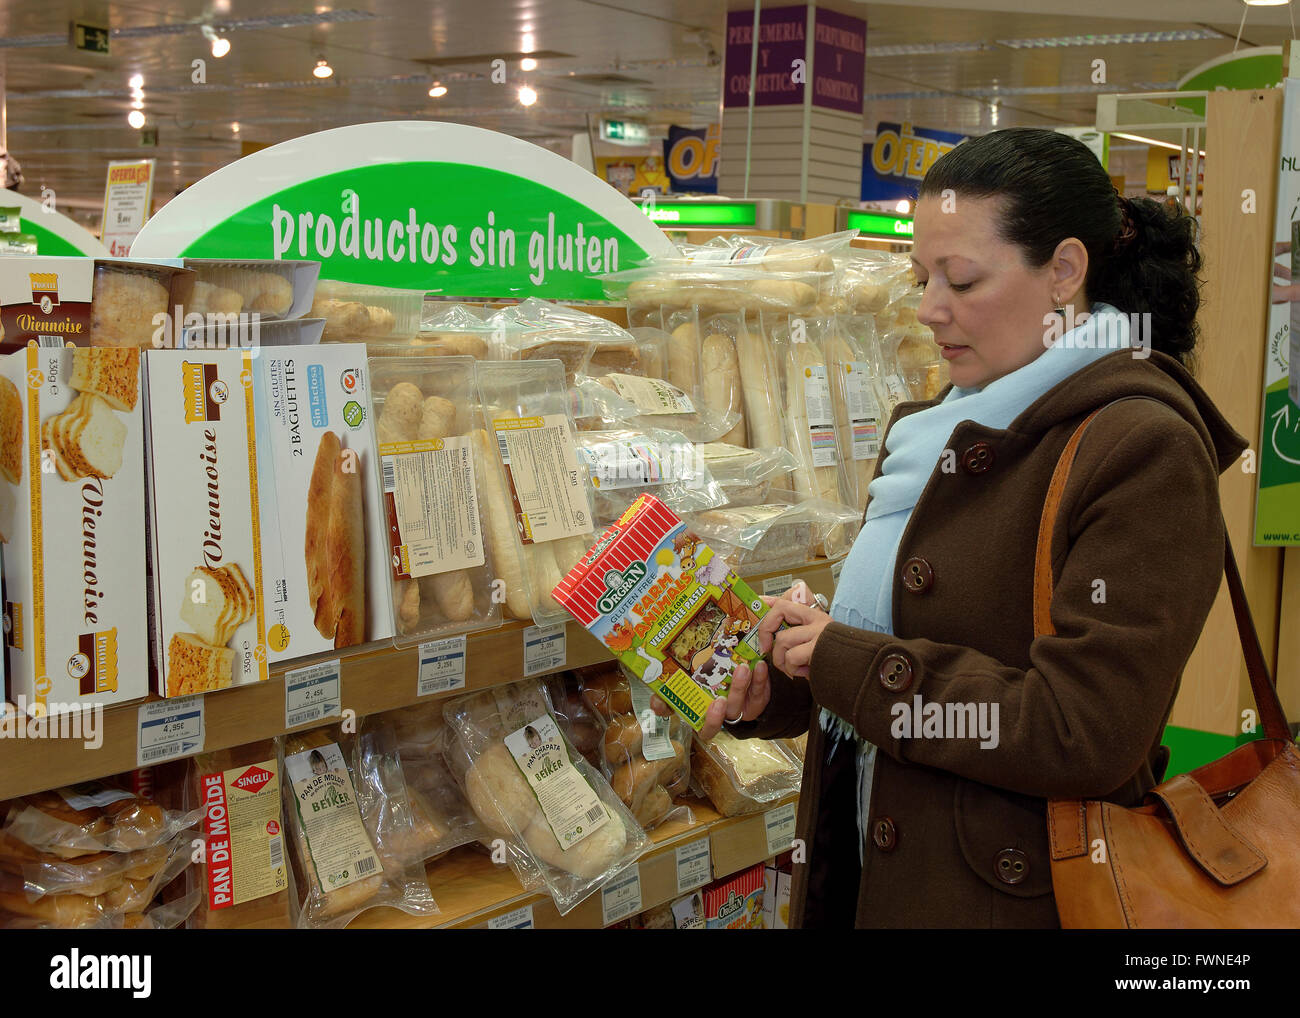 Supermarket, Gluten-free products, Seville, Region of Andalusia, Spain, Europe - Stock Image